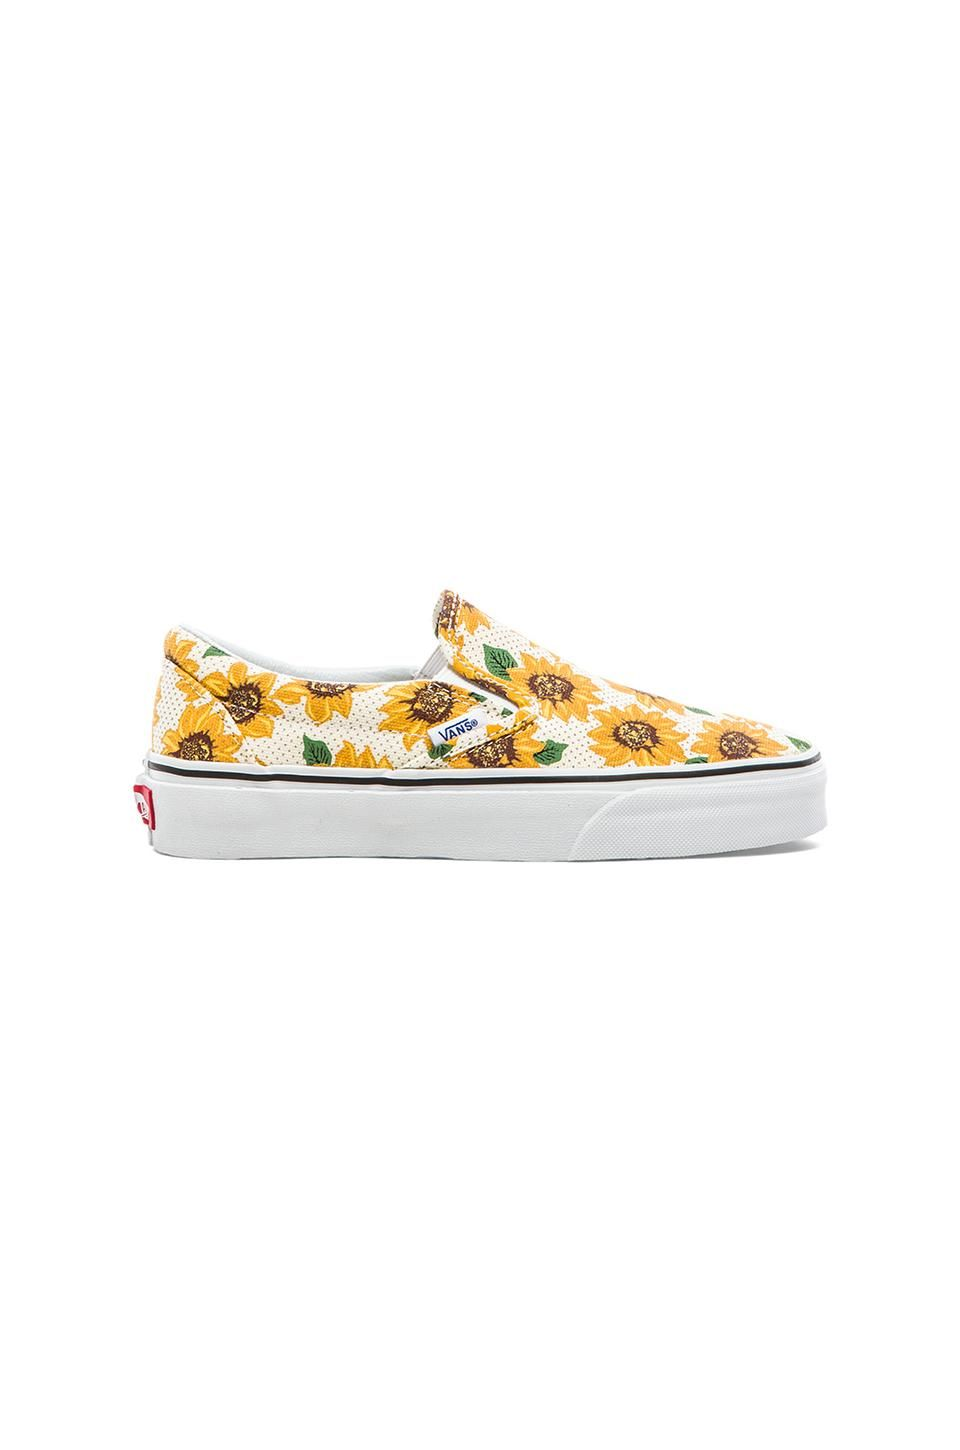 a71406f7b1958e Vans Classic Sunflower Slip On in True White